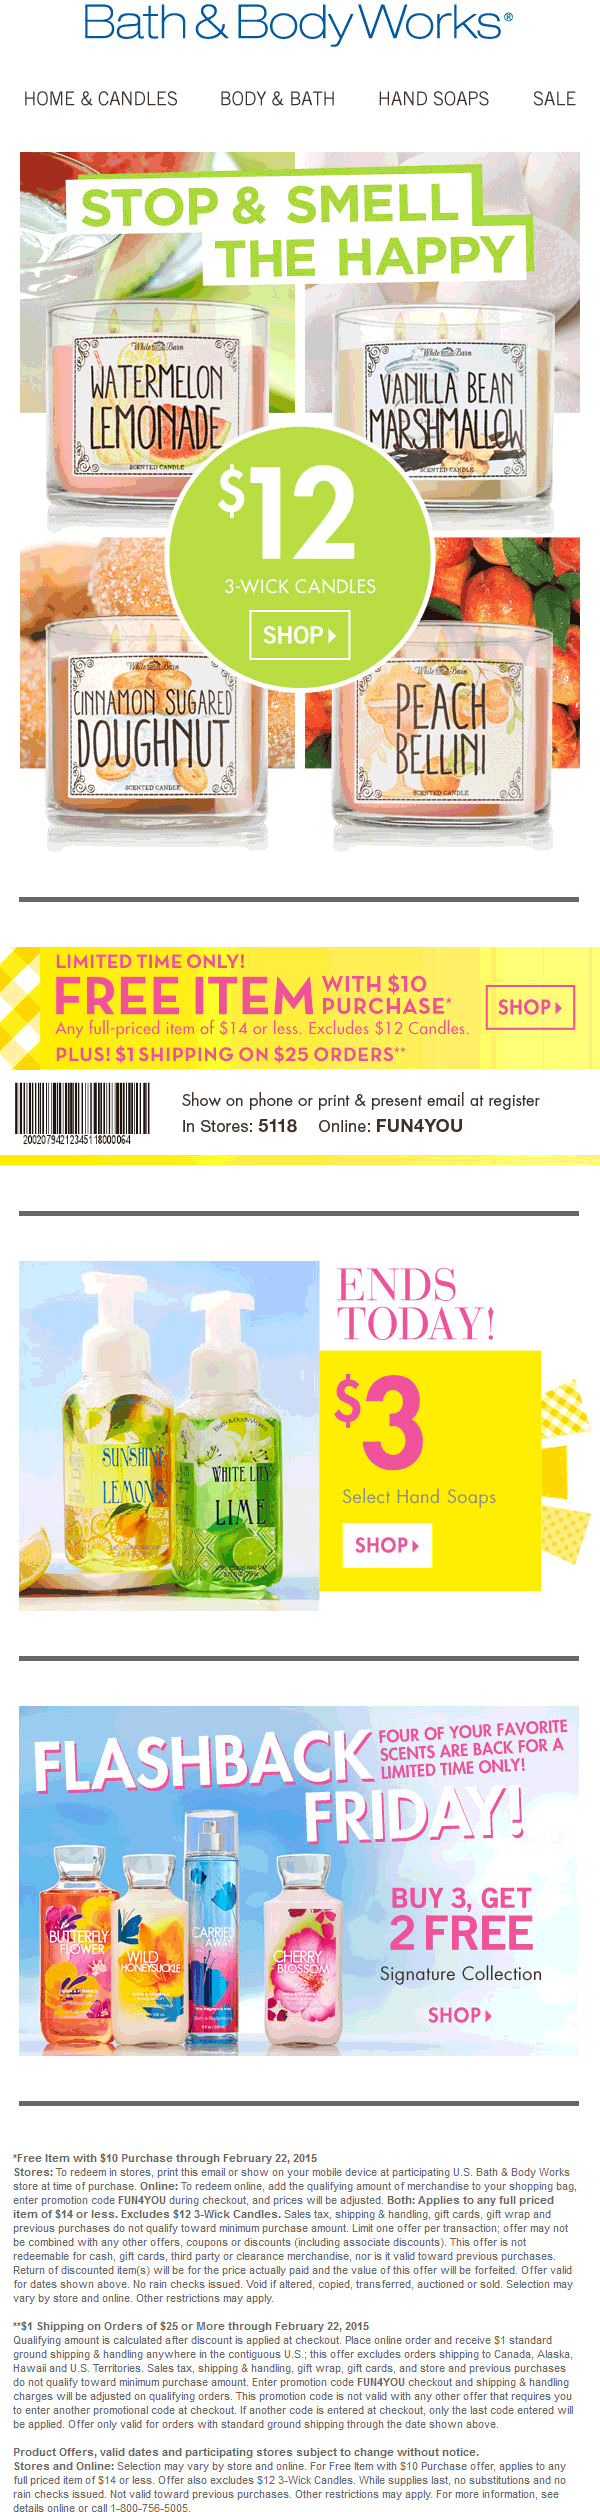 Bath & Body Works Coupon May 2017 Any $14 item free with $10 spent at Bath & Body Works, or online via promo code FUN4YOU